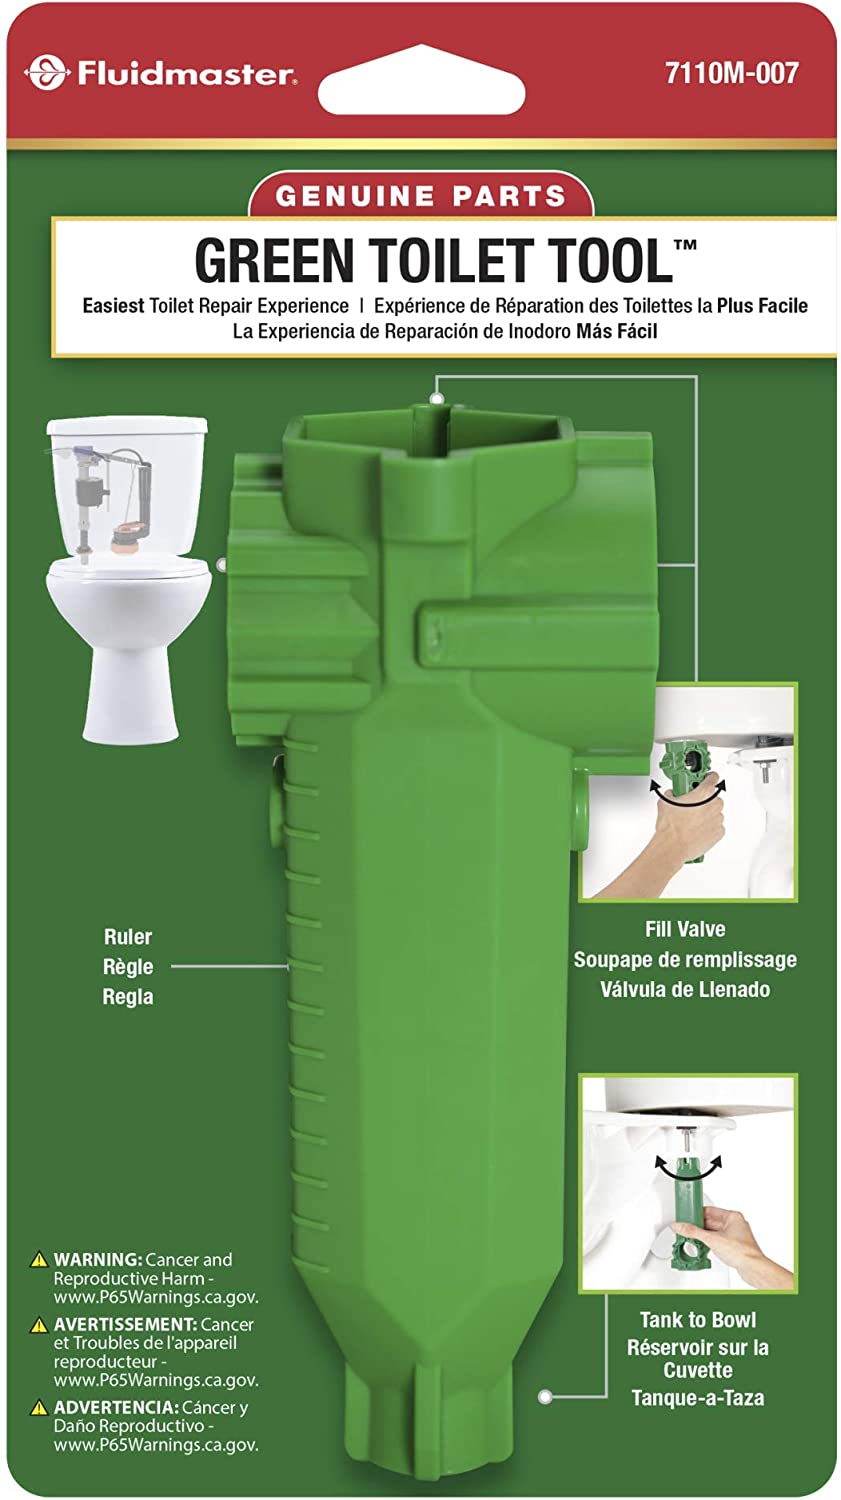 Fluidmaster 7110M-007-P10 Green Quality Now free shipping inspection Toilet tool